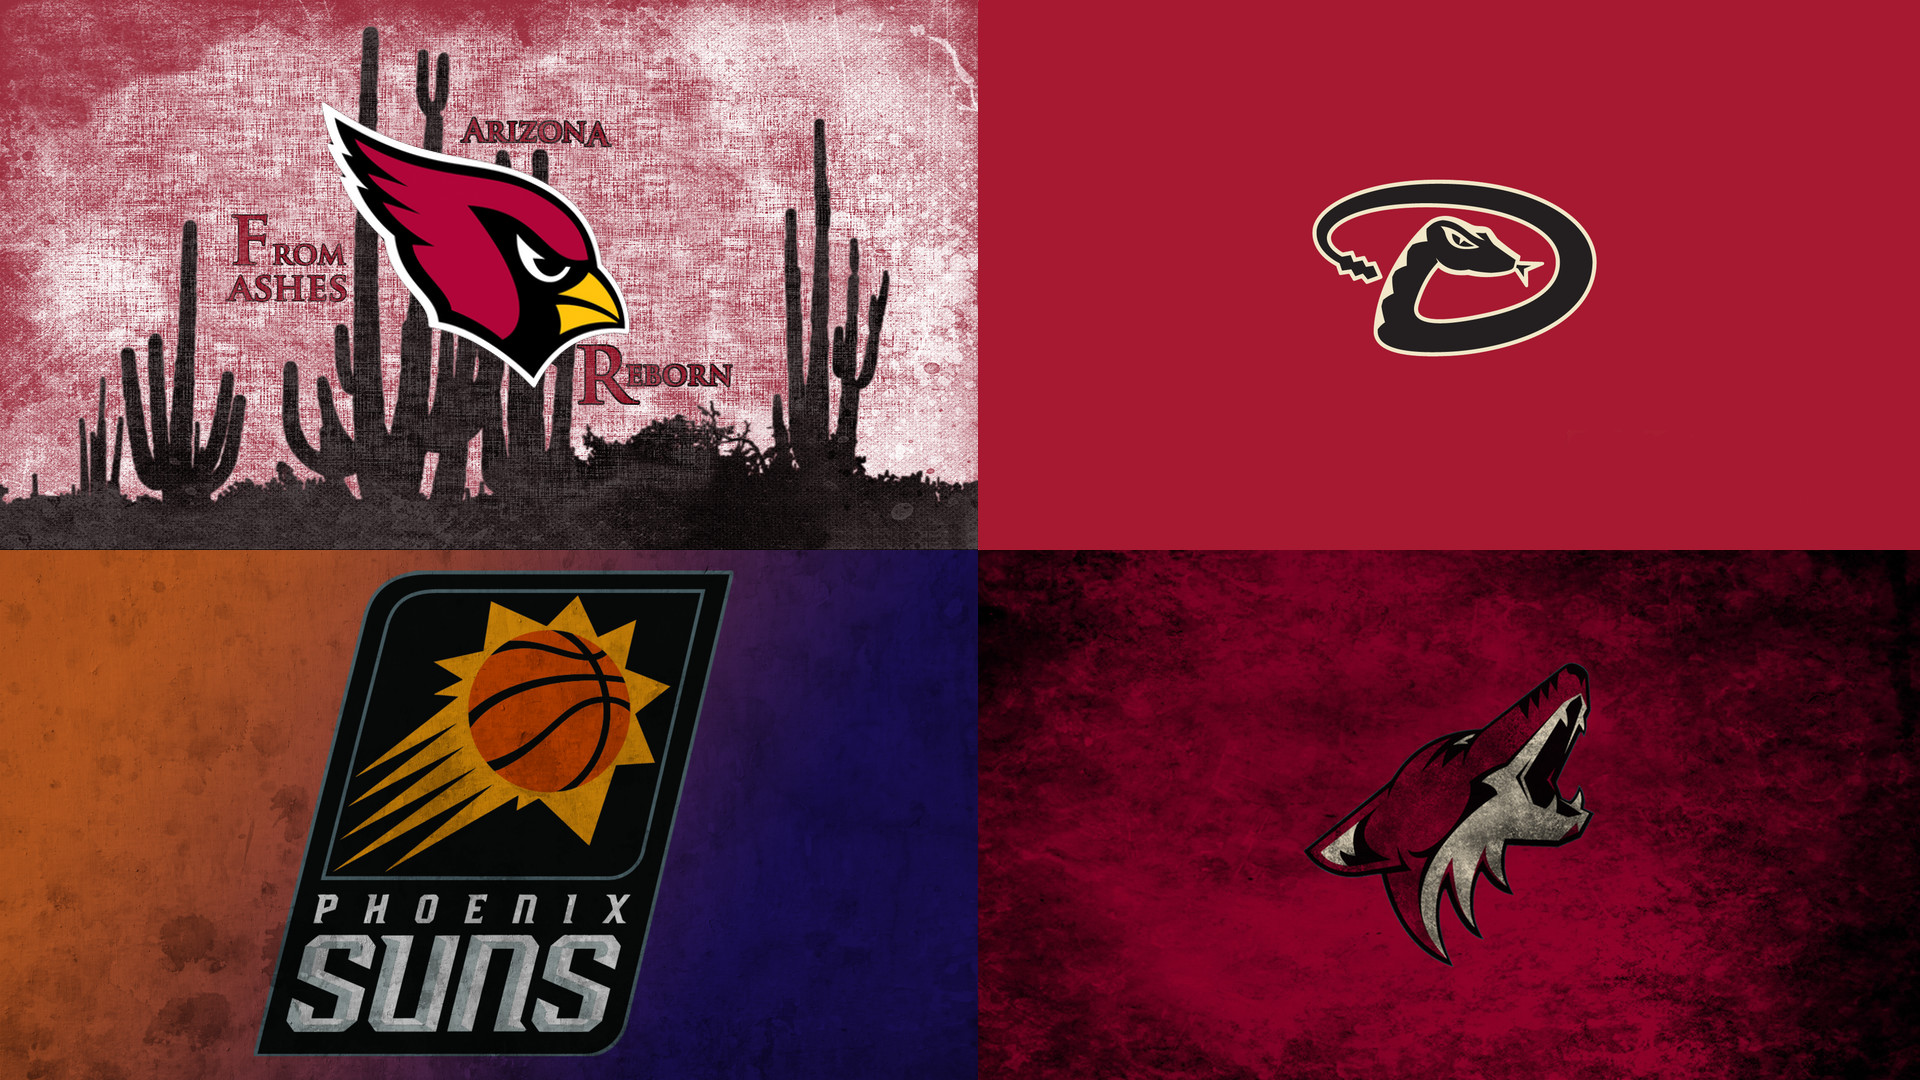 1920x1080 - Arizona Diamondbacks Wallpapers 8